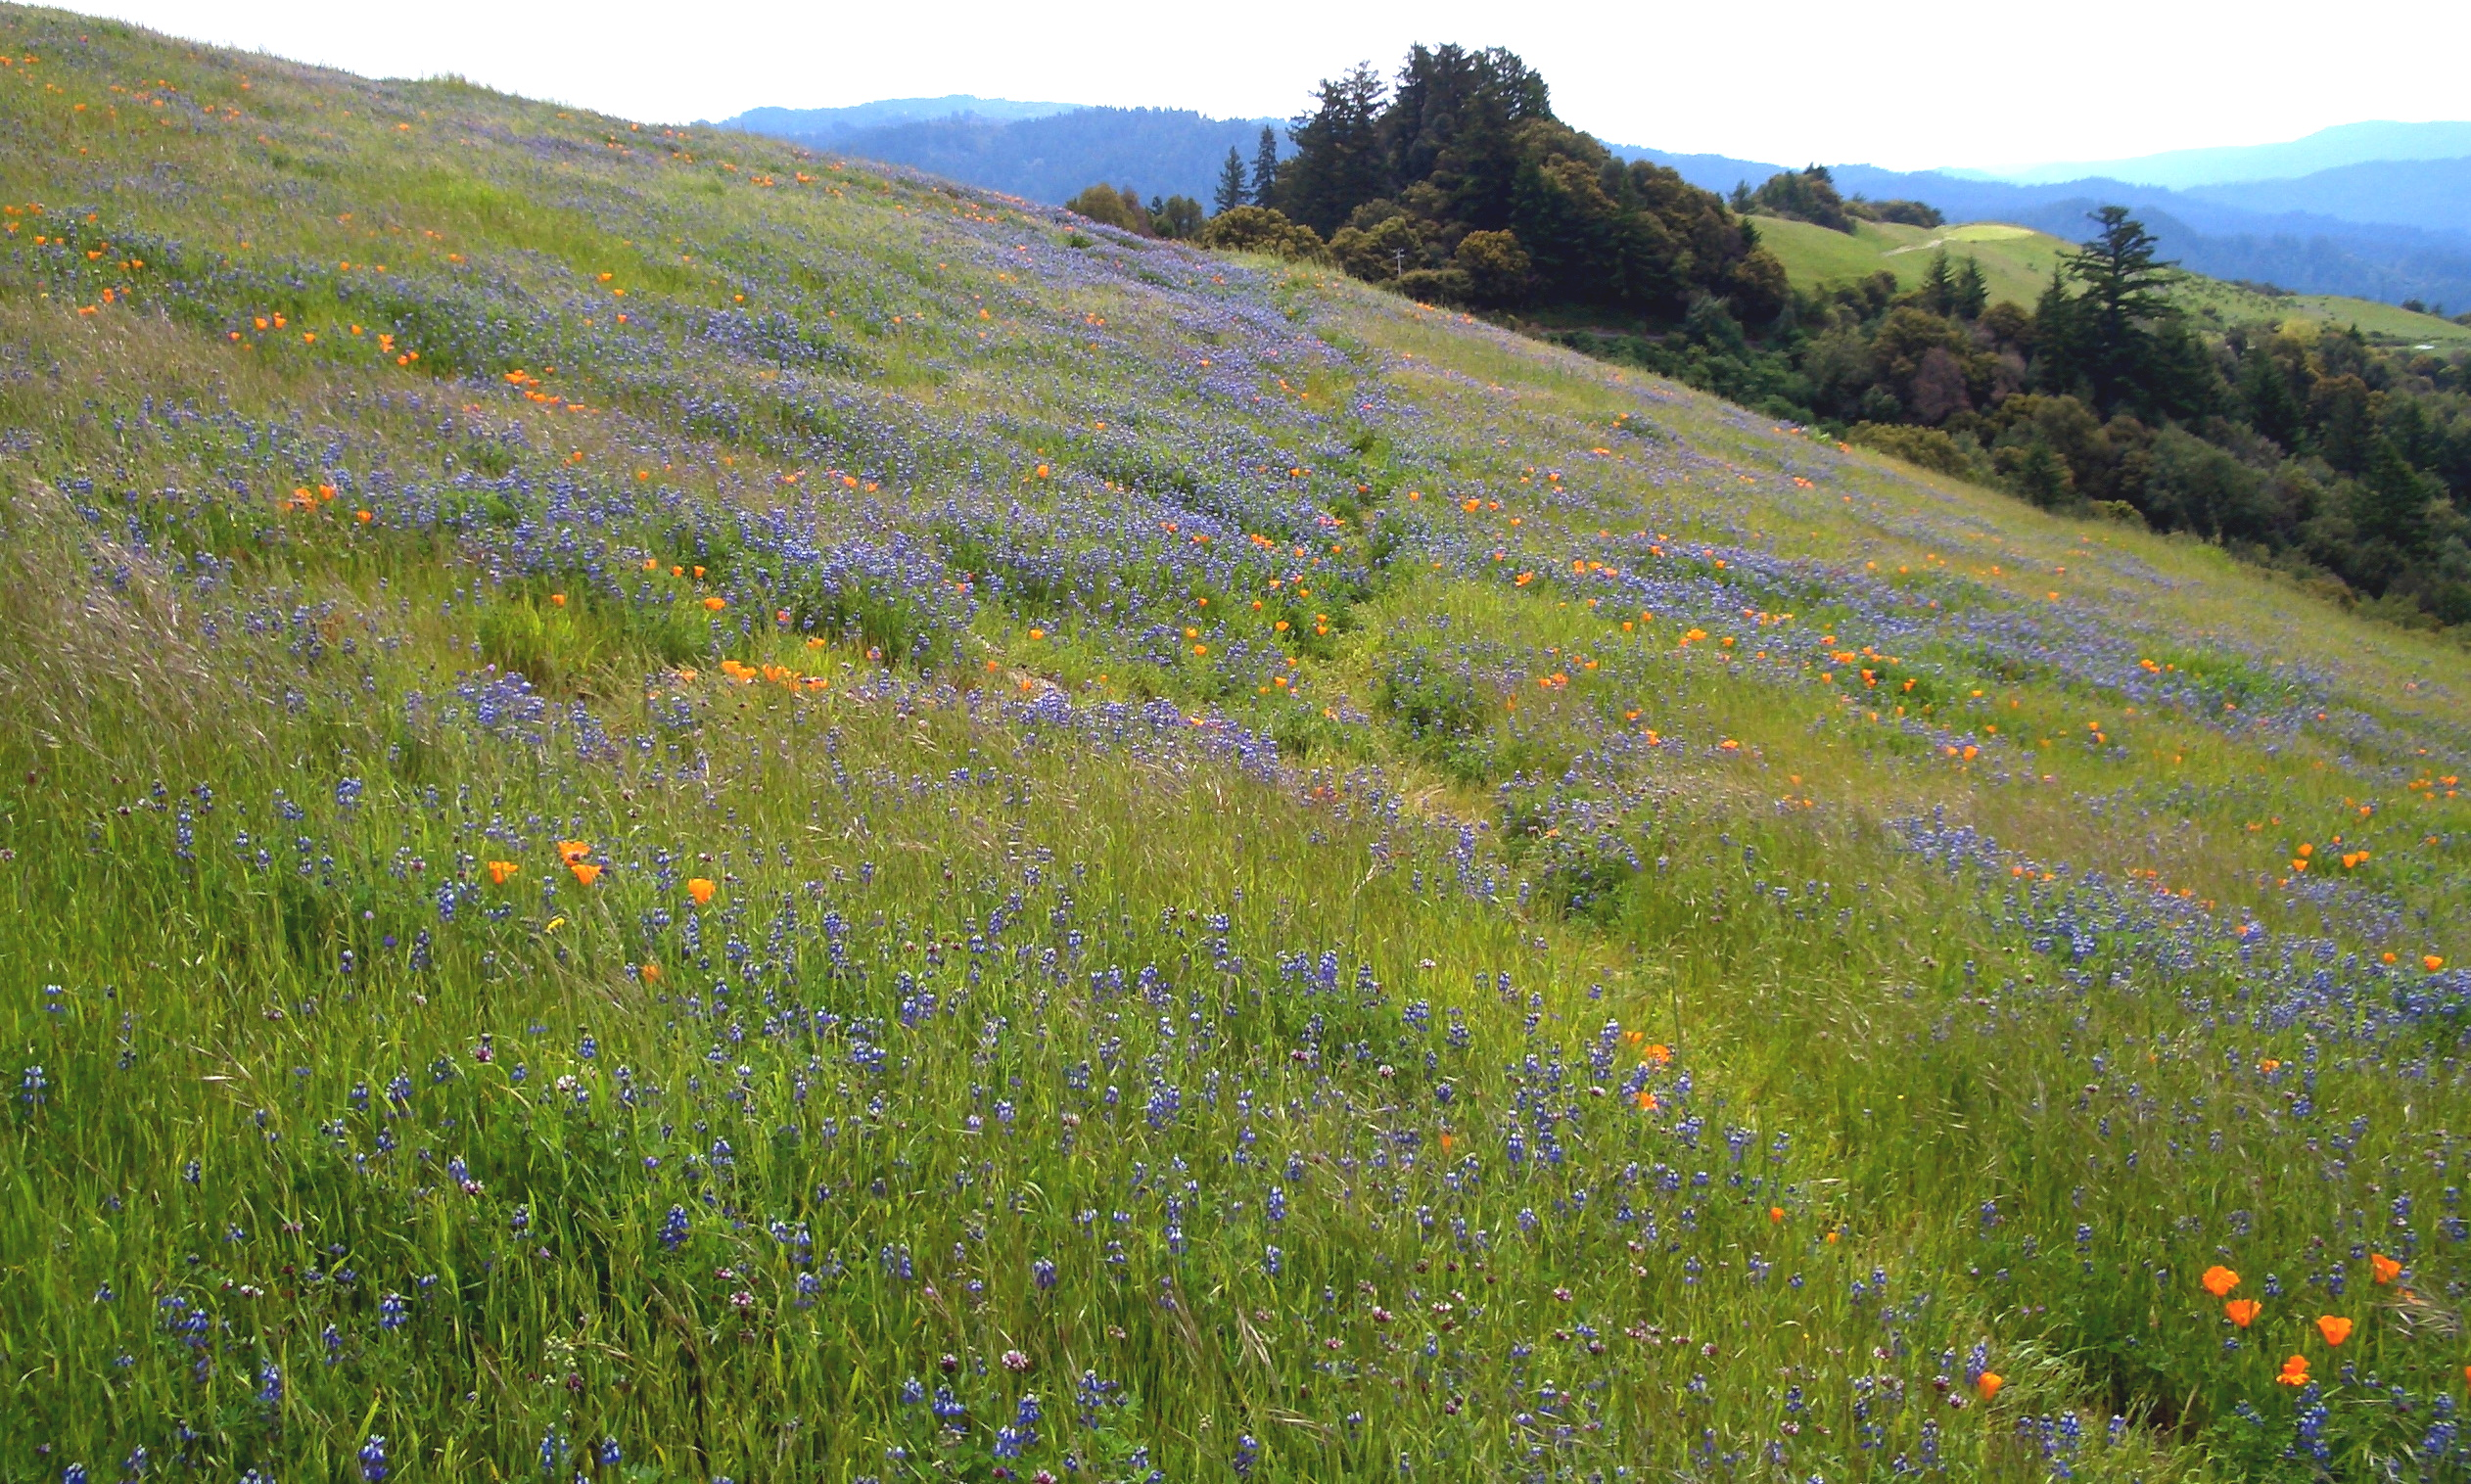 Russian Ridge-Wildflowers